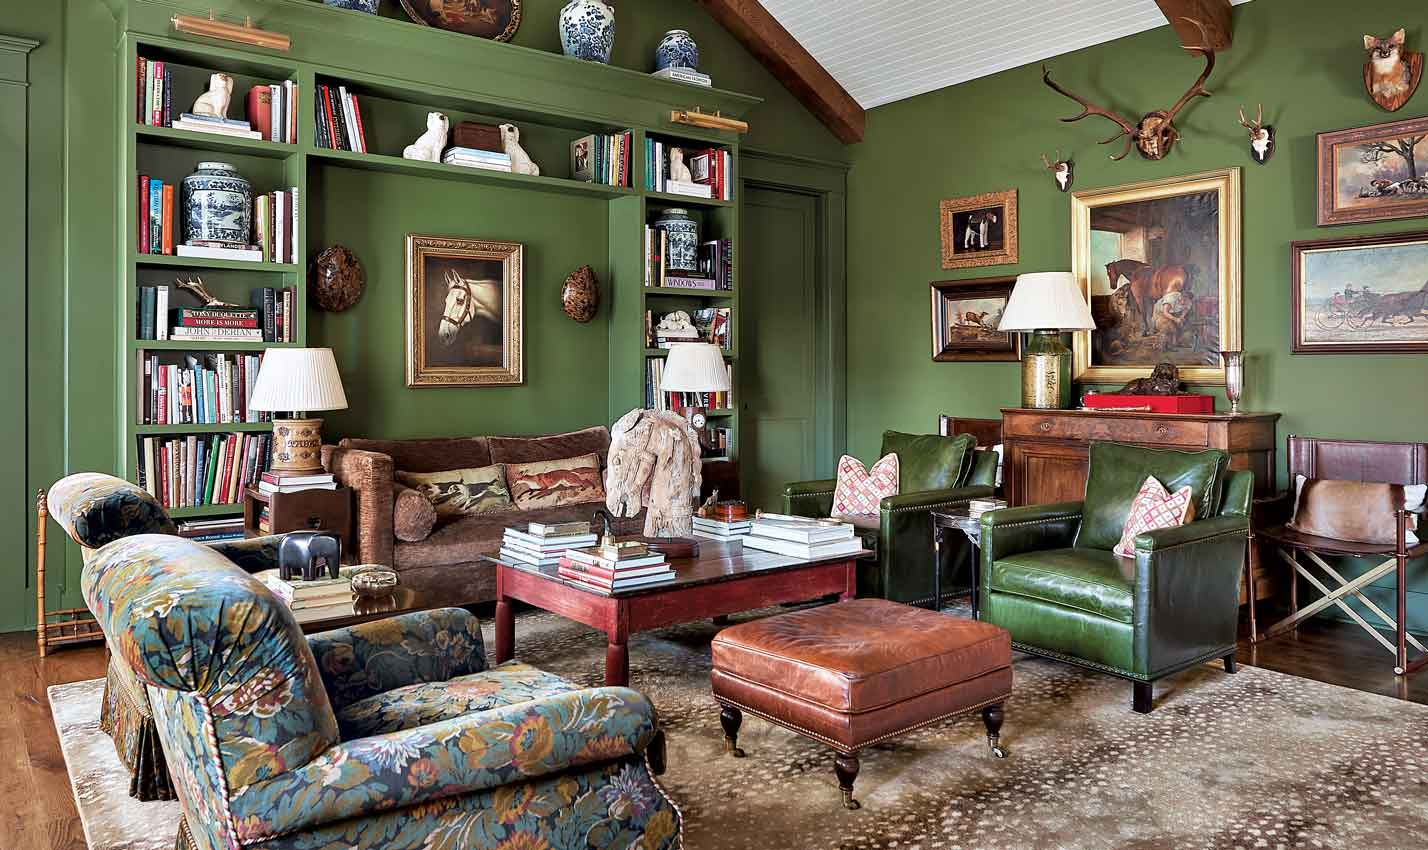 A deep green den/Photography: Dustin Peck/This deeply cozy den, designed by Tom Bossard and Len Cherry and painted in Farrow & Ball's Bancha green, exudes cozy comfort. Shop Farrow & Ball's Bancha green samples to recreate the vibe.